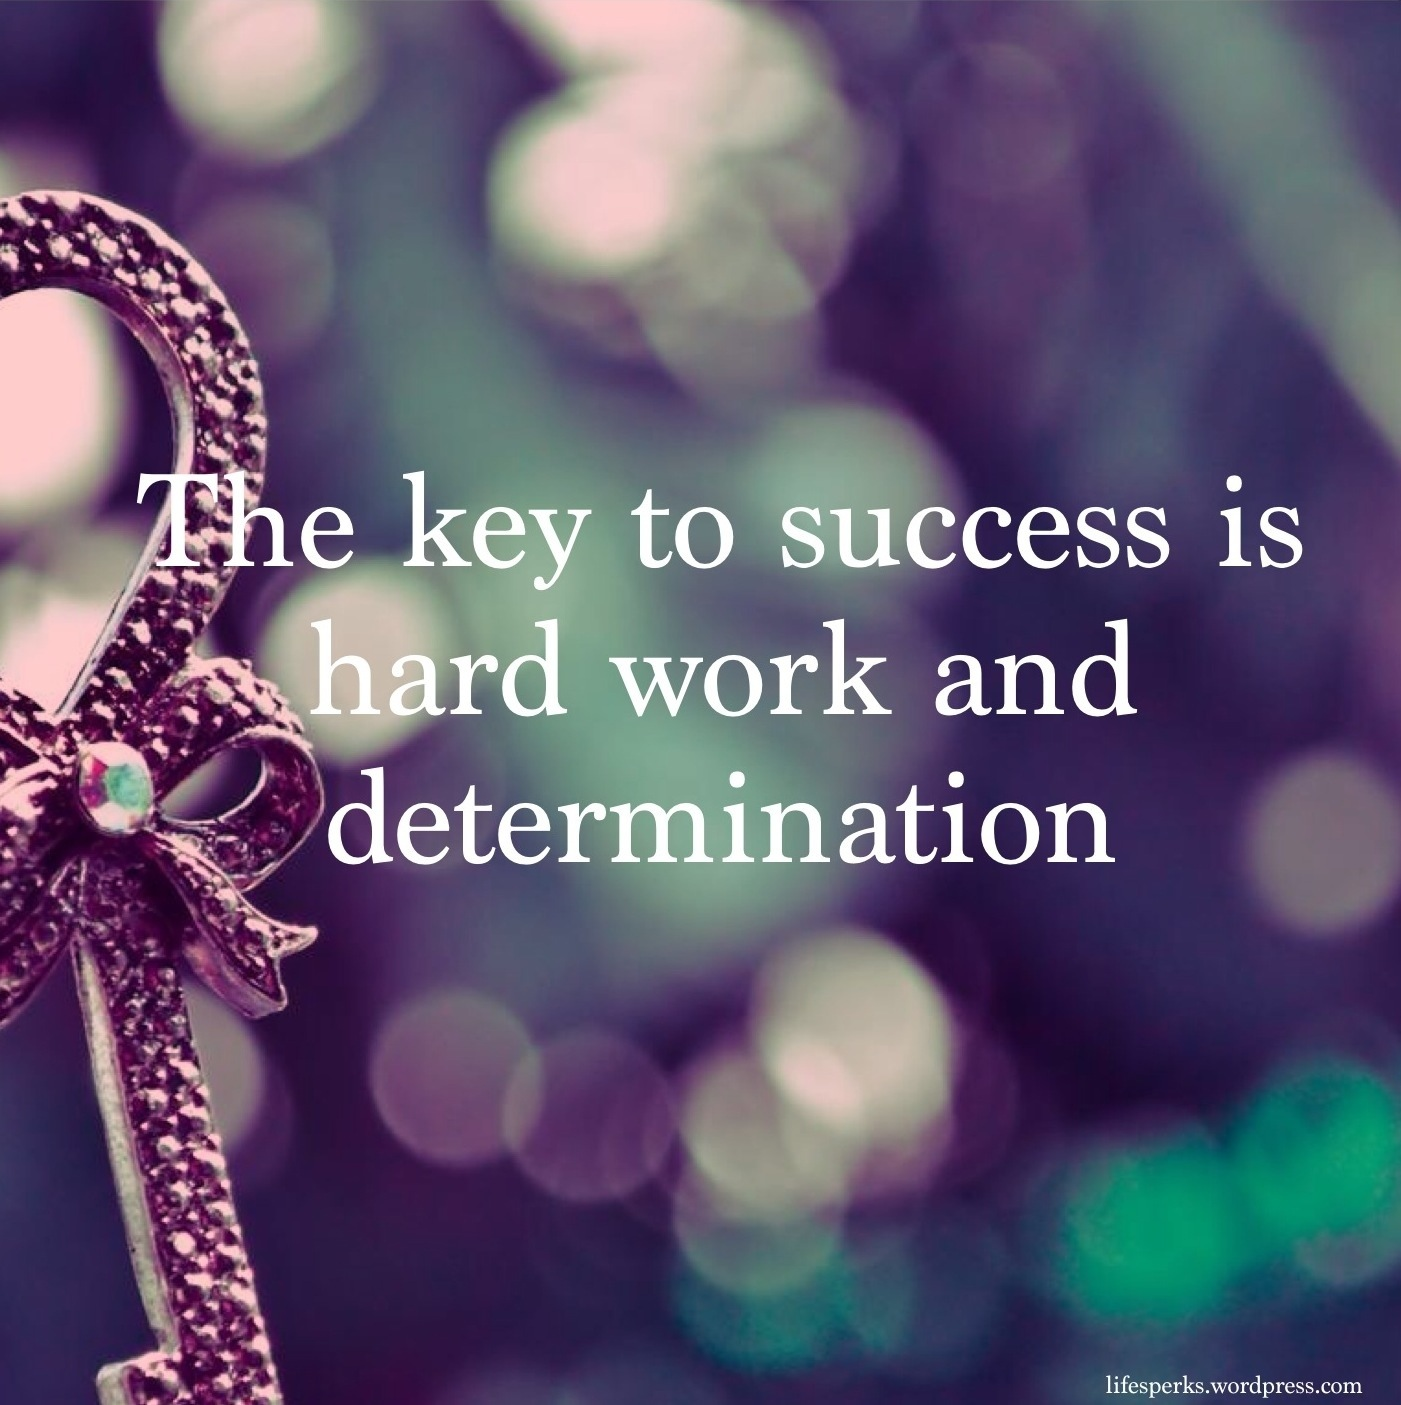 essay on hard work is the key to success in students life Some are filled with students whose intellectual gifts and/or hard work yield academic success  a key word or phrase in  this essay has a lot to say to college .